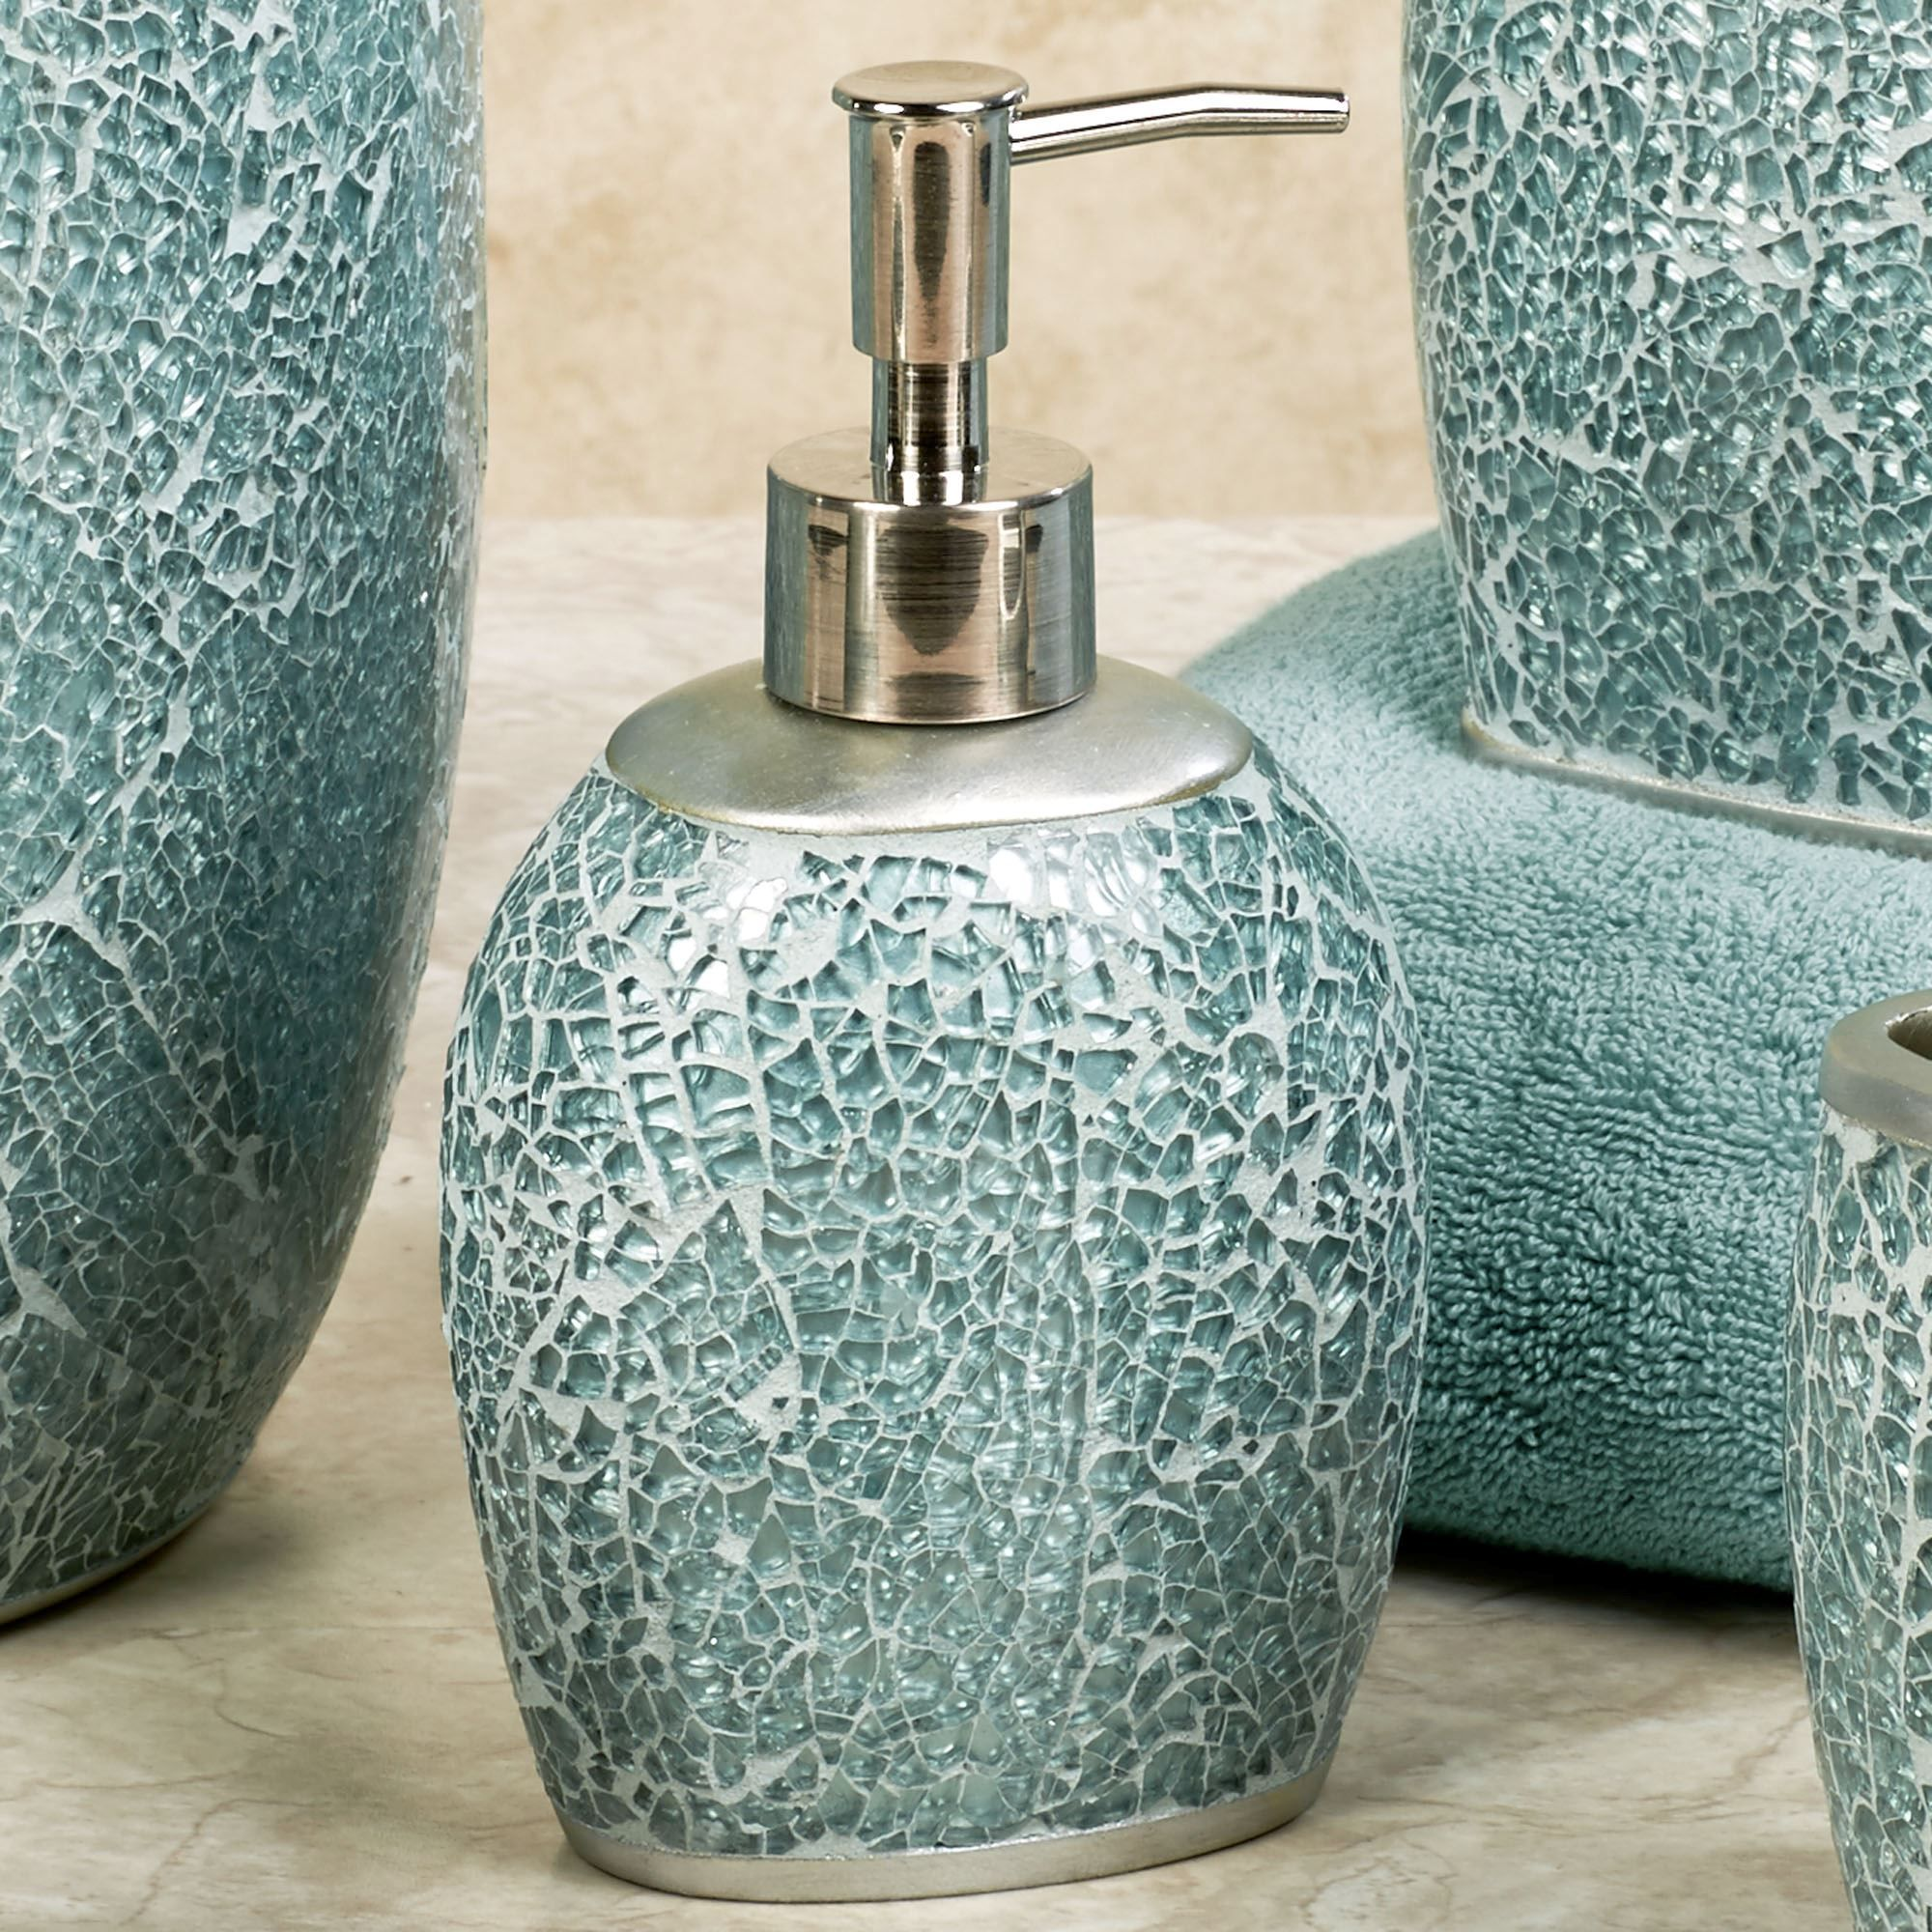 Calm Waters Light Aqua Mosaic Bath Accessories Posts Soaps and